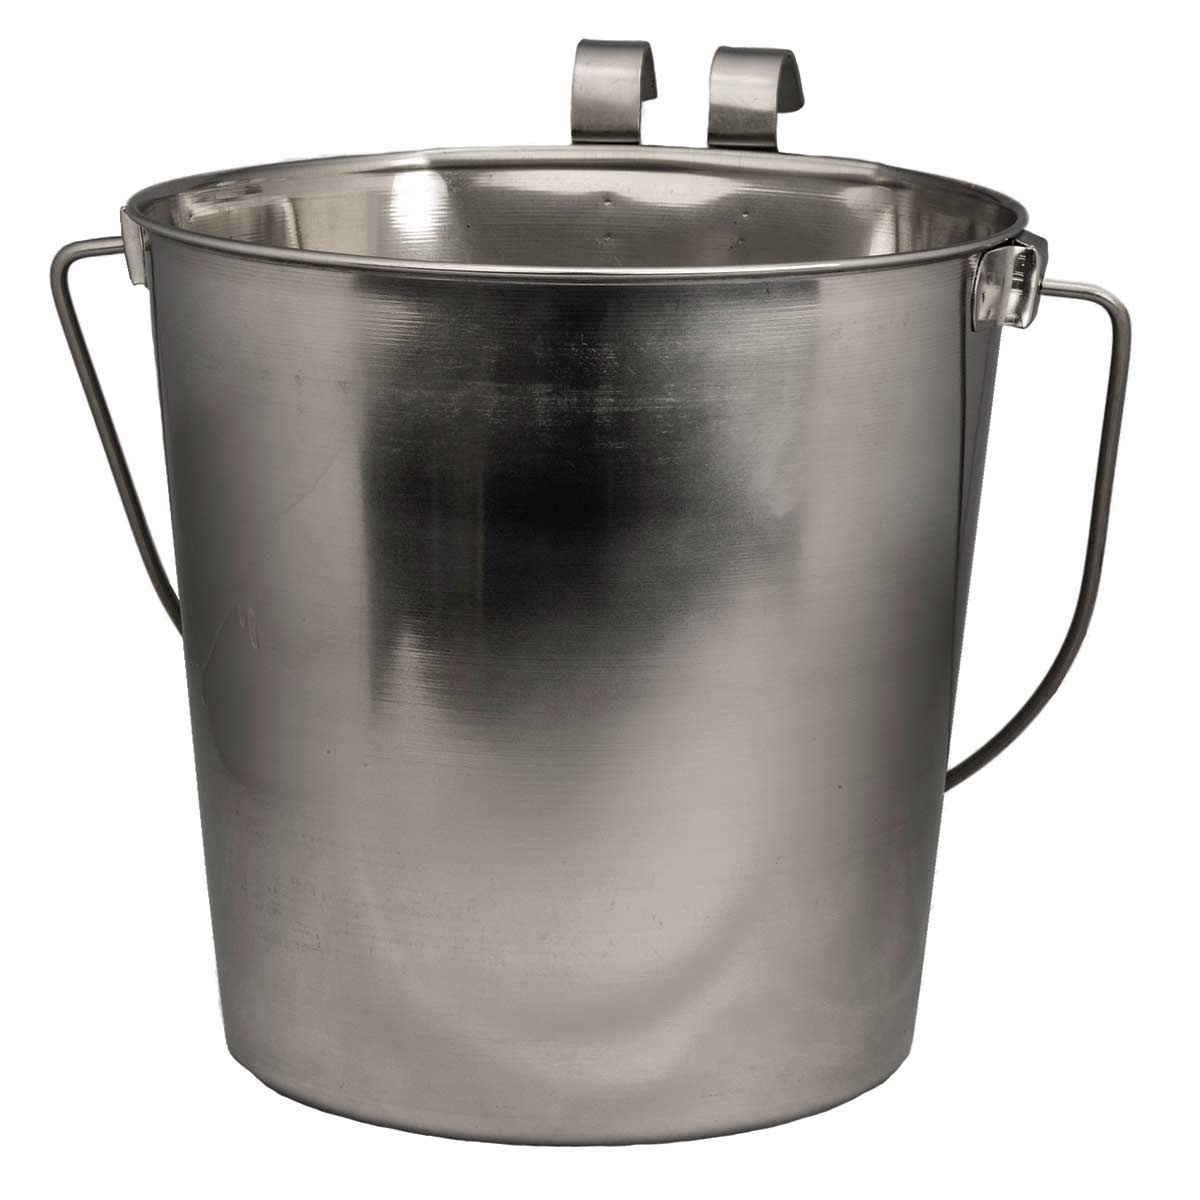 Indipets Flat Side Stainless Steel Pail With Handle 6 Quart